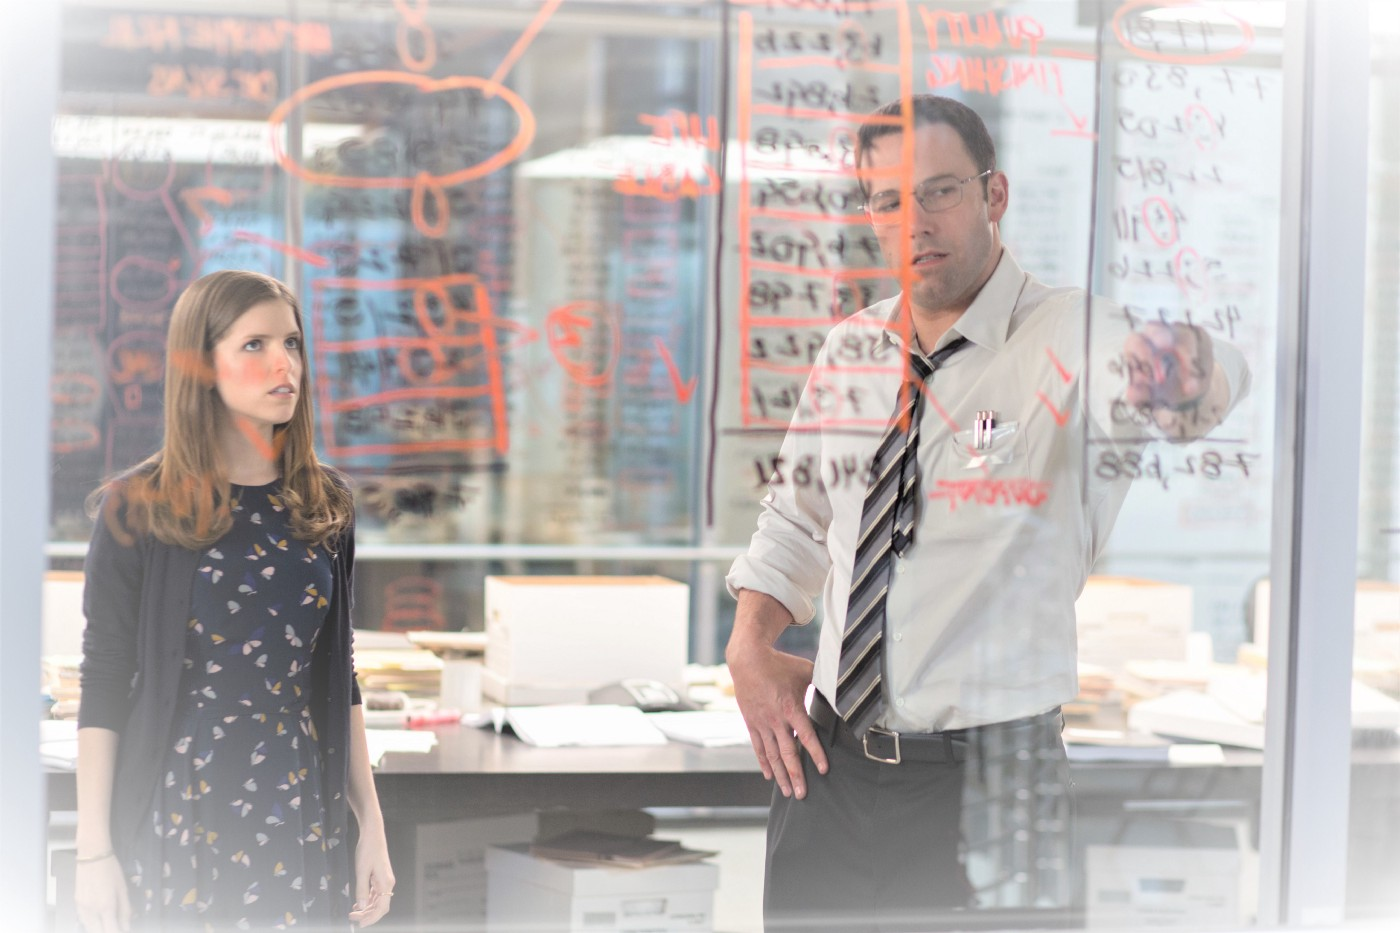 Scene from The Accountant. Ben Affleck is writing numbers on a glass window while Anna Kendrick watches.